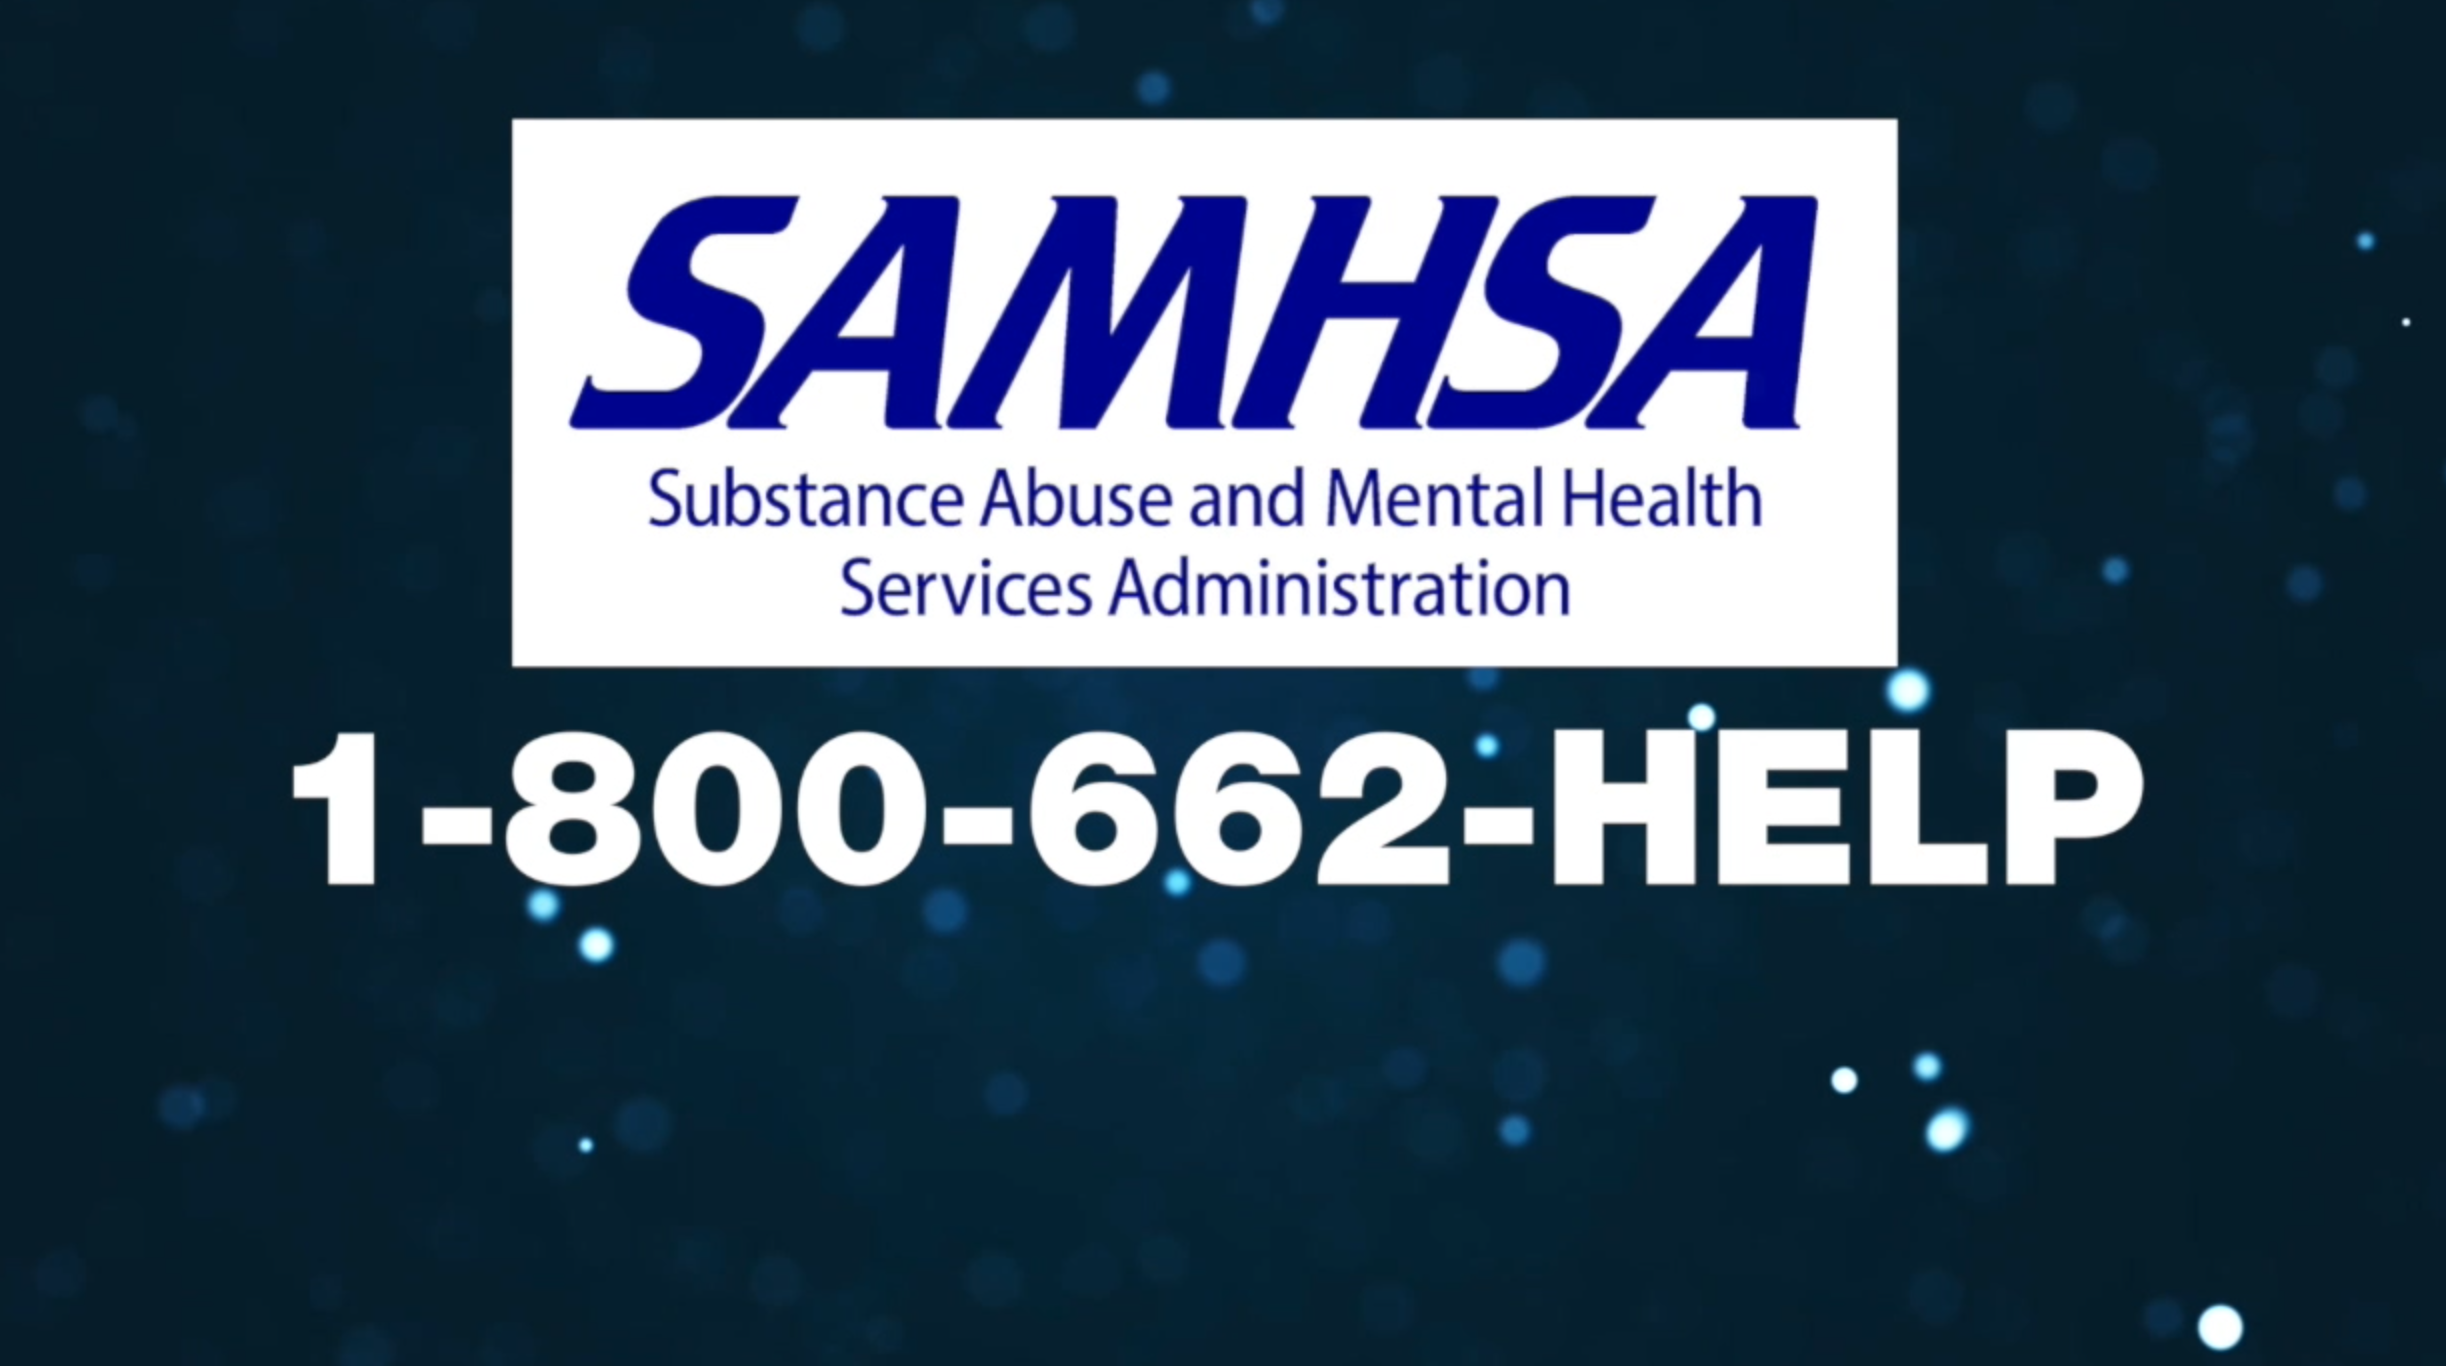 National Helpline Samhsa Substance Abuse And Mental Health >> There S A 24 7 Support Line For Addicts But Many Don T Know About It